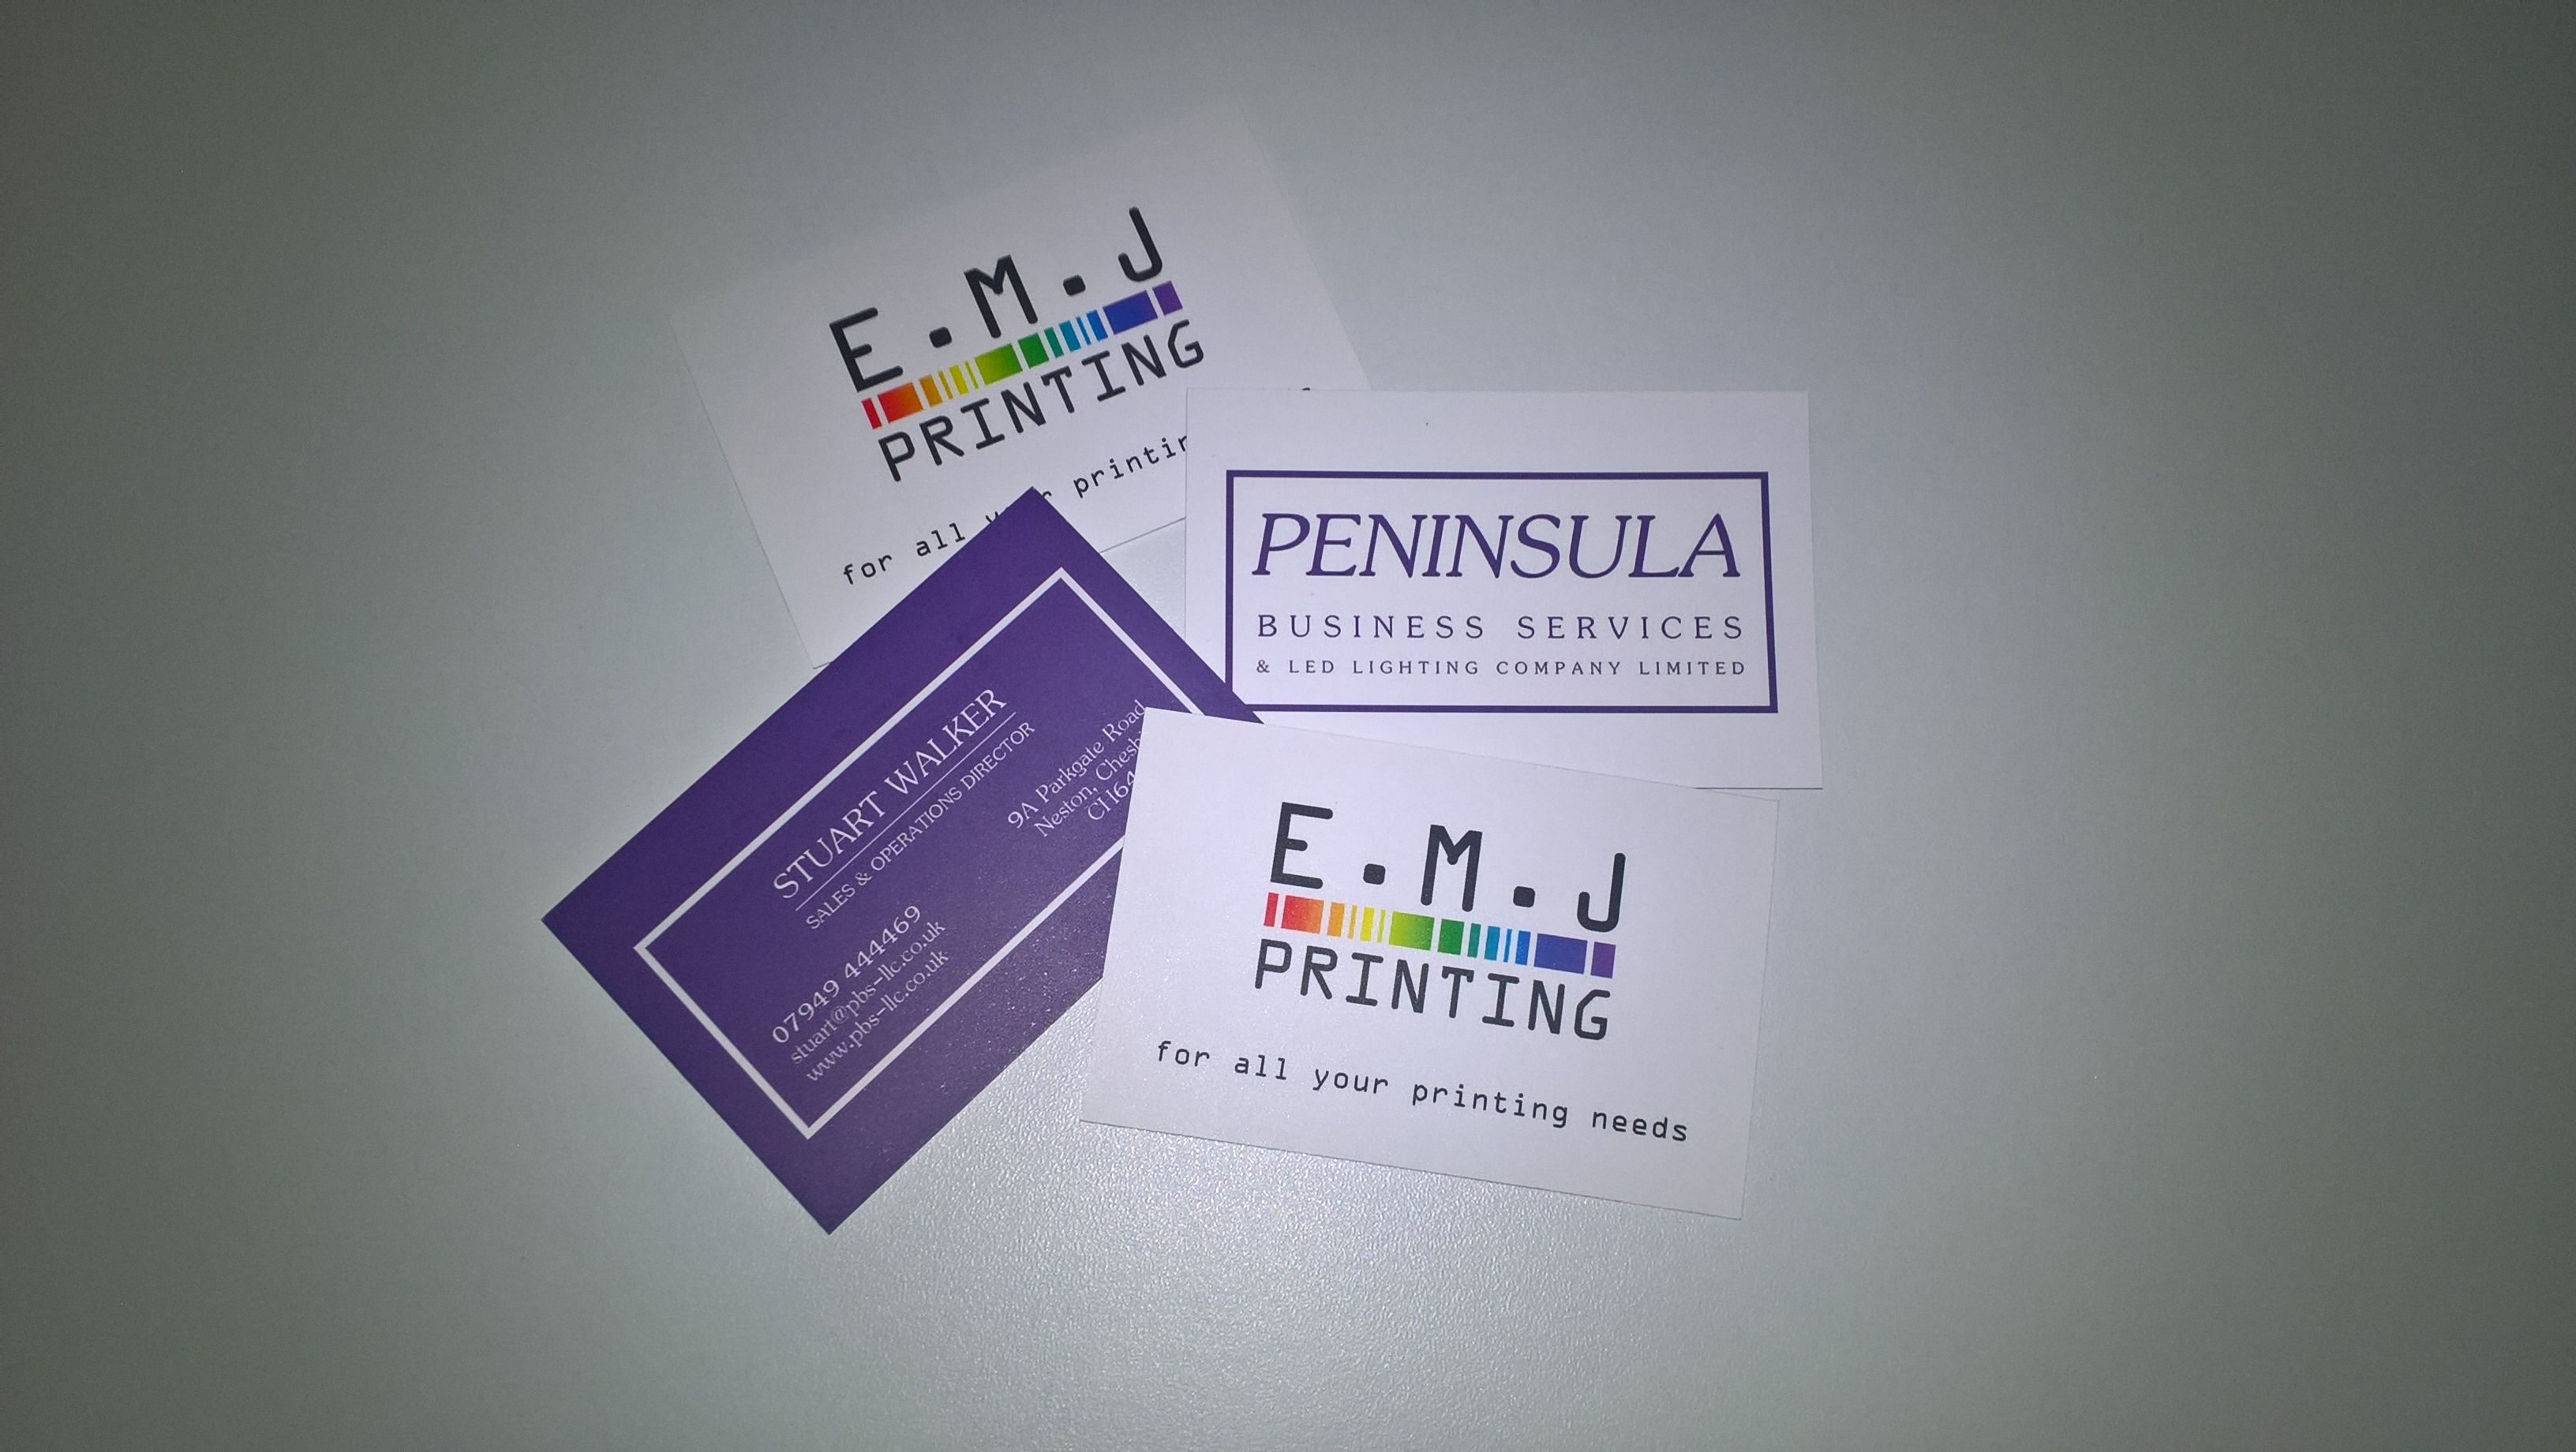 Business cards free design printing free delivery by emj printing business cards free design printing free delivery by emj printing emj printing pinterest free design reheart Image collections